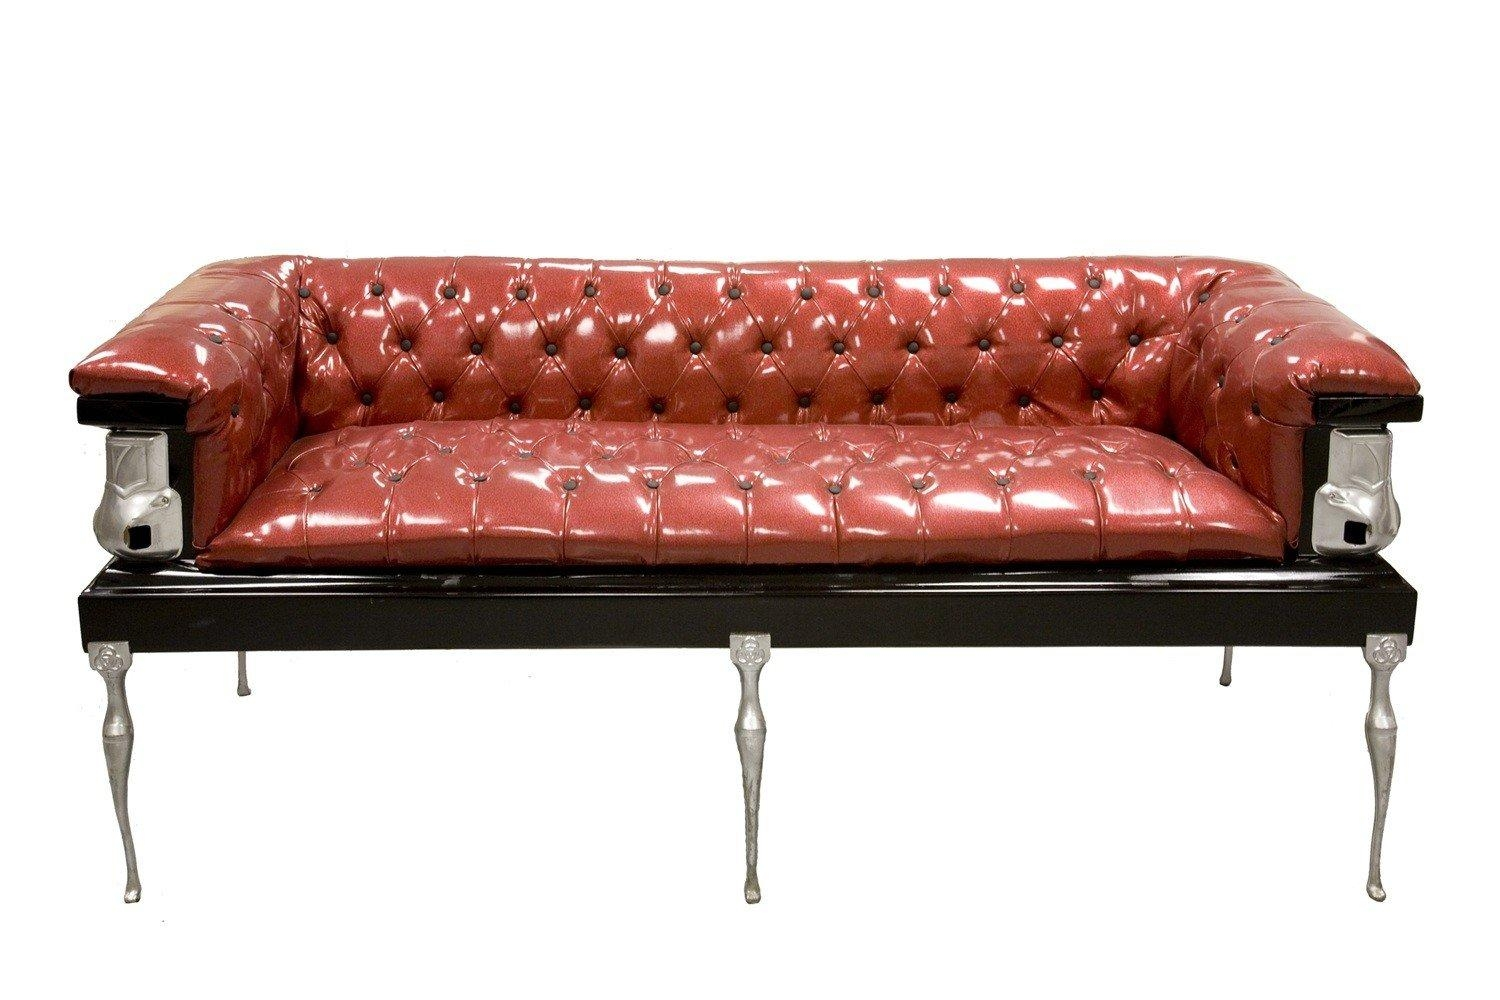 Coffin Sofa With Ideas Design 38195 | Kengire Throughout Coffin Sofas (Image 9 of 20)